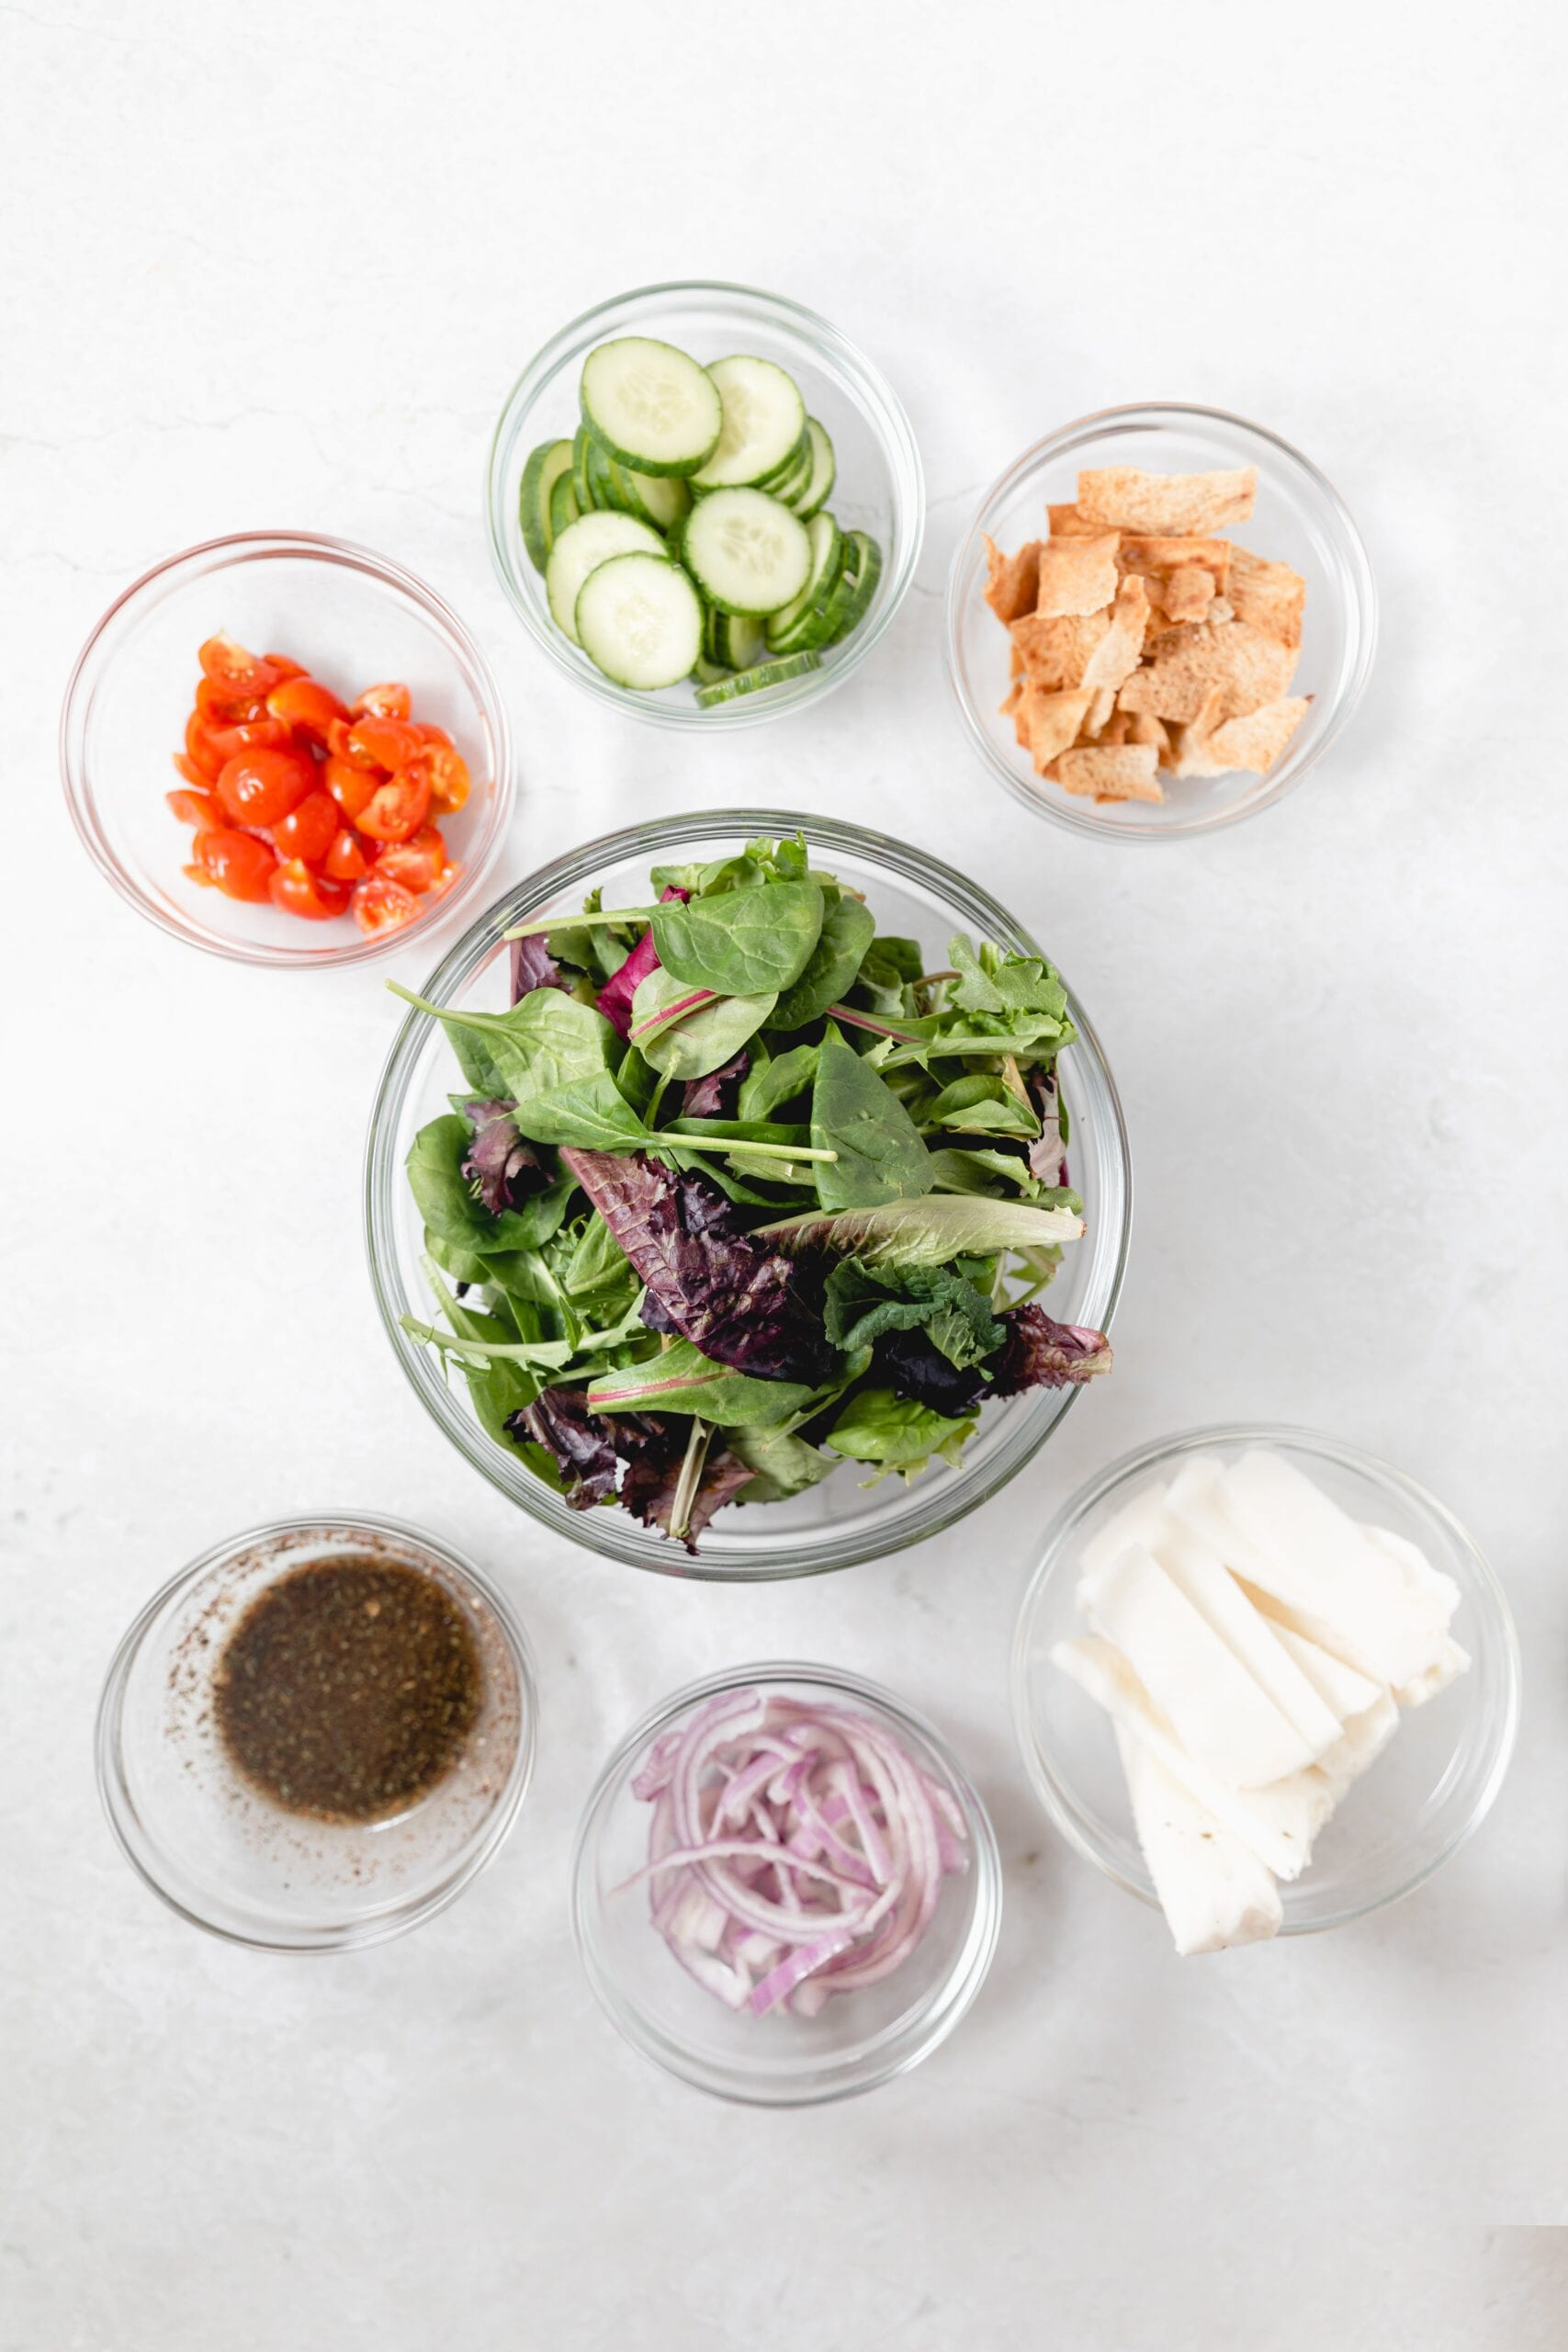 Ingredients for halloumi salad in glass bowls